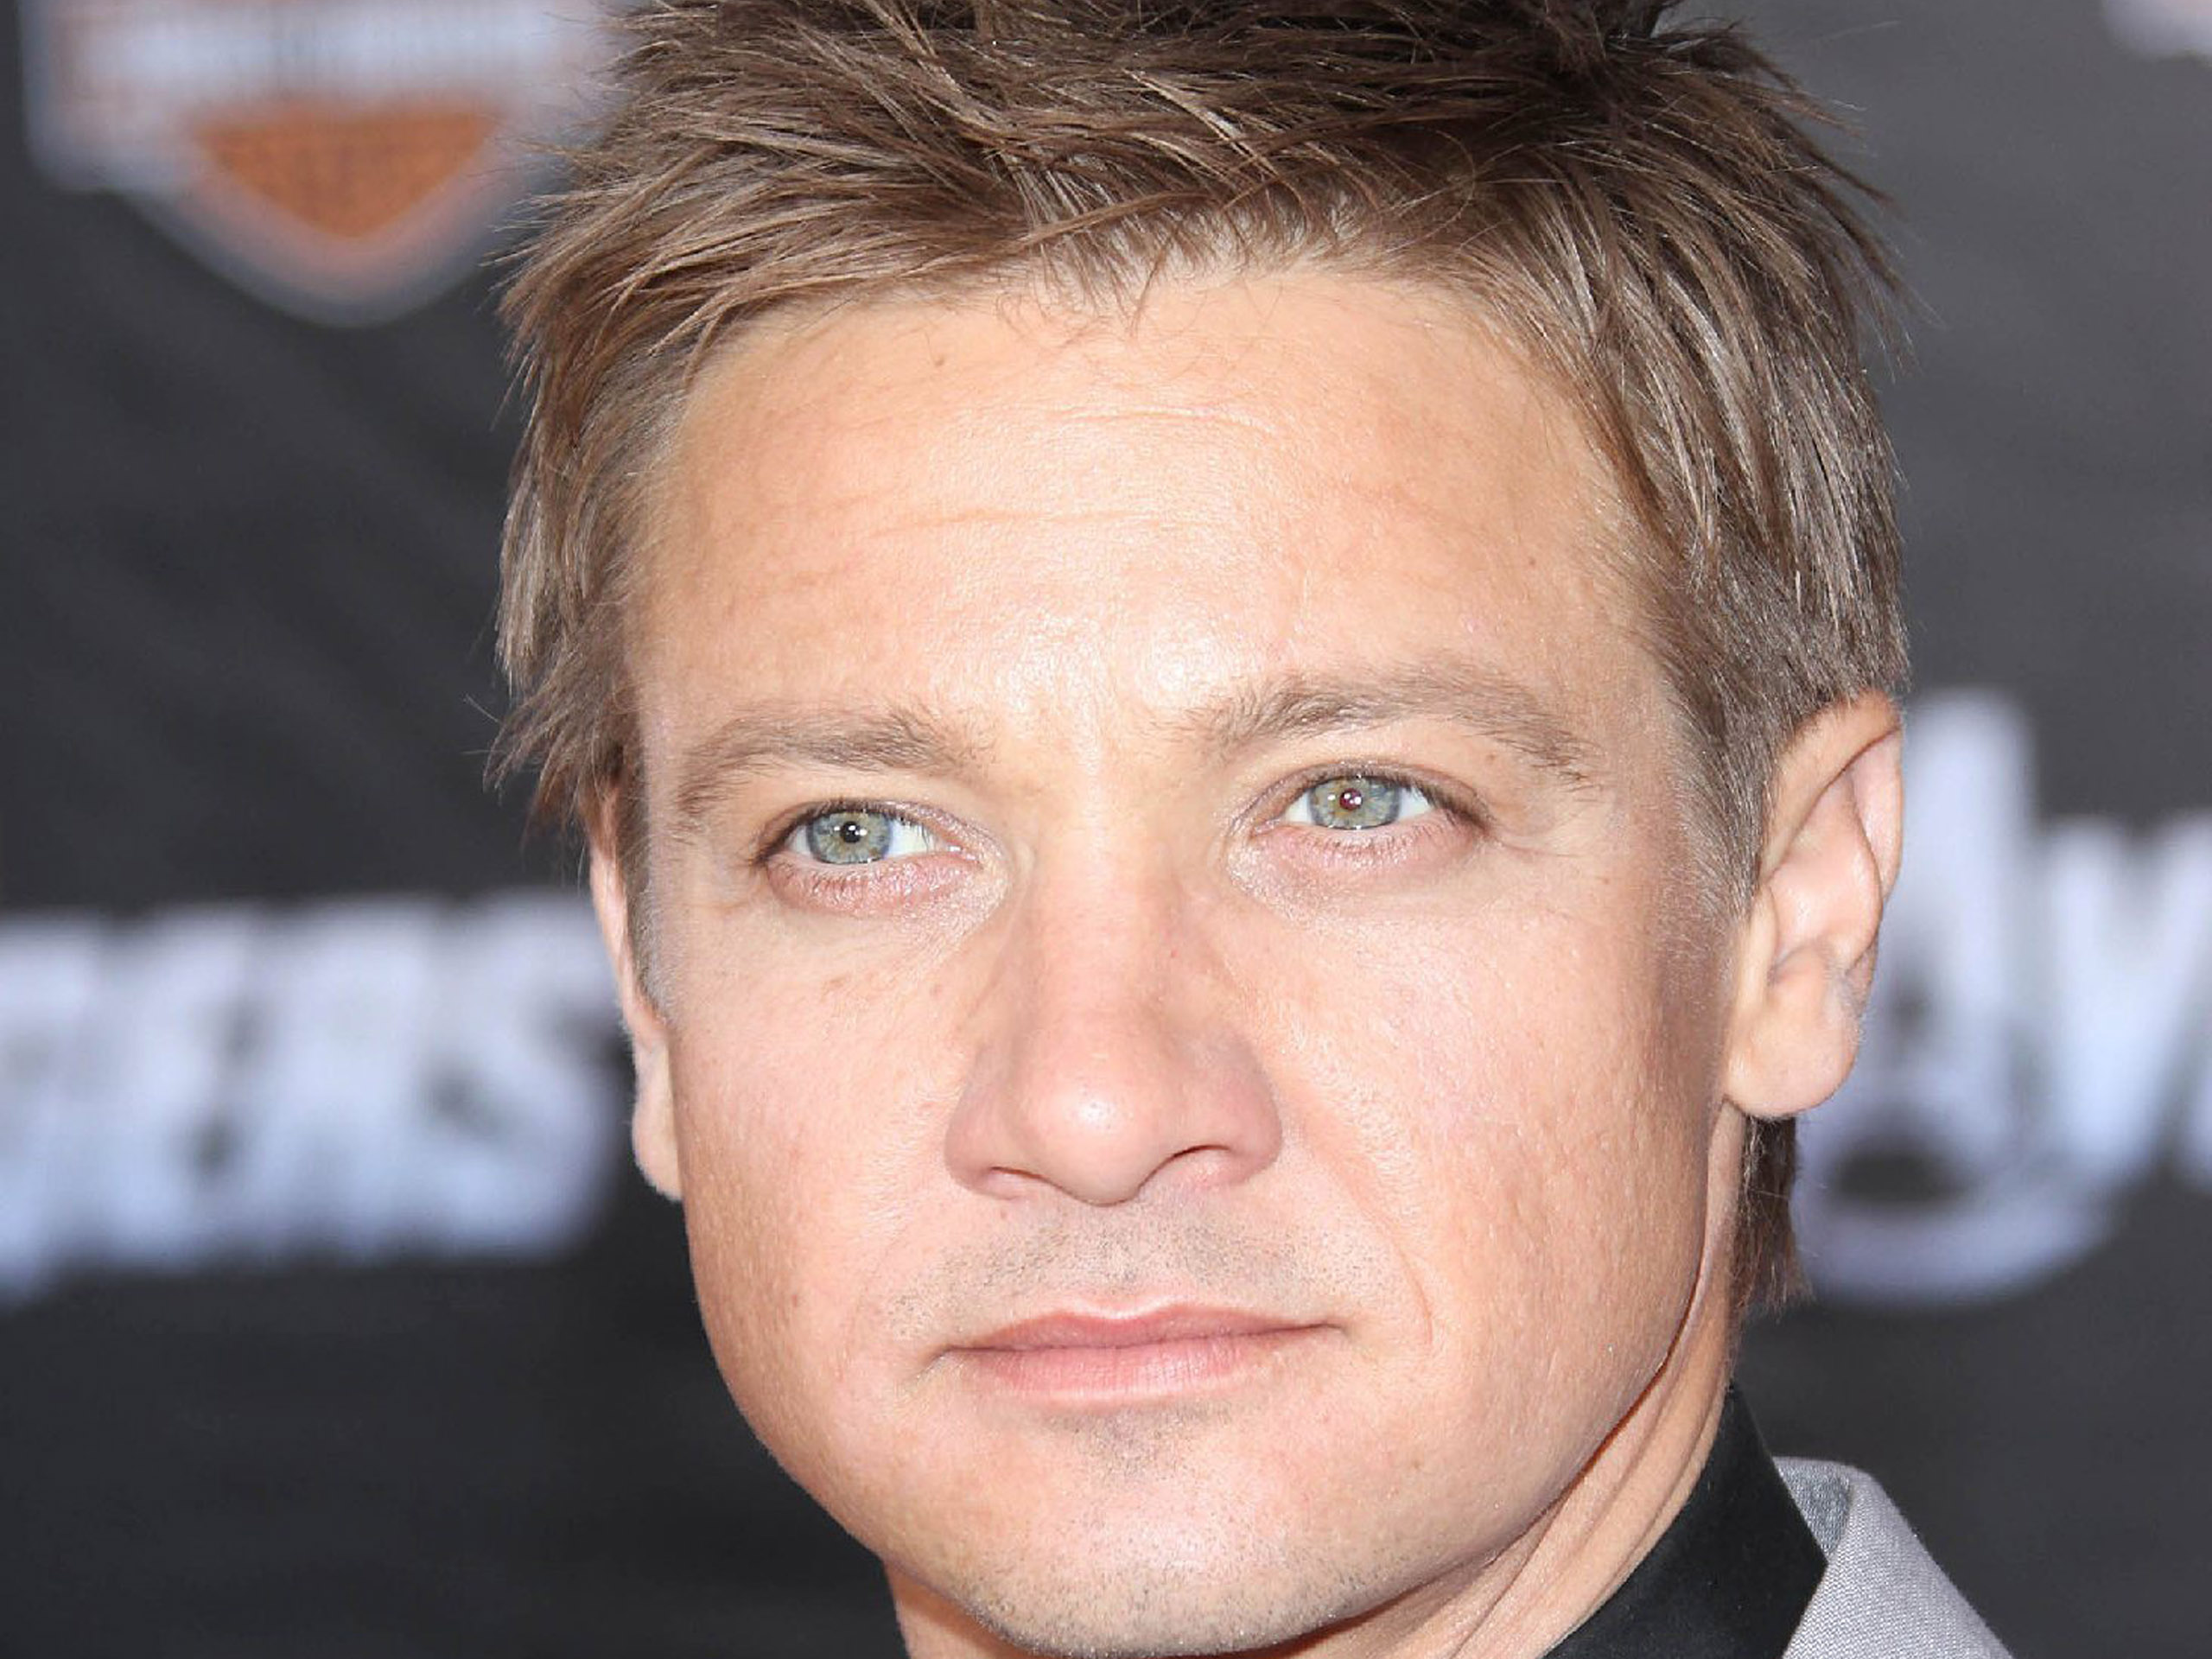 jeremy renner face wallpaper photos 57230